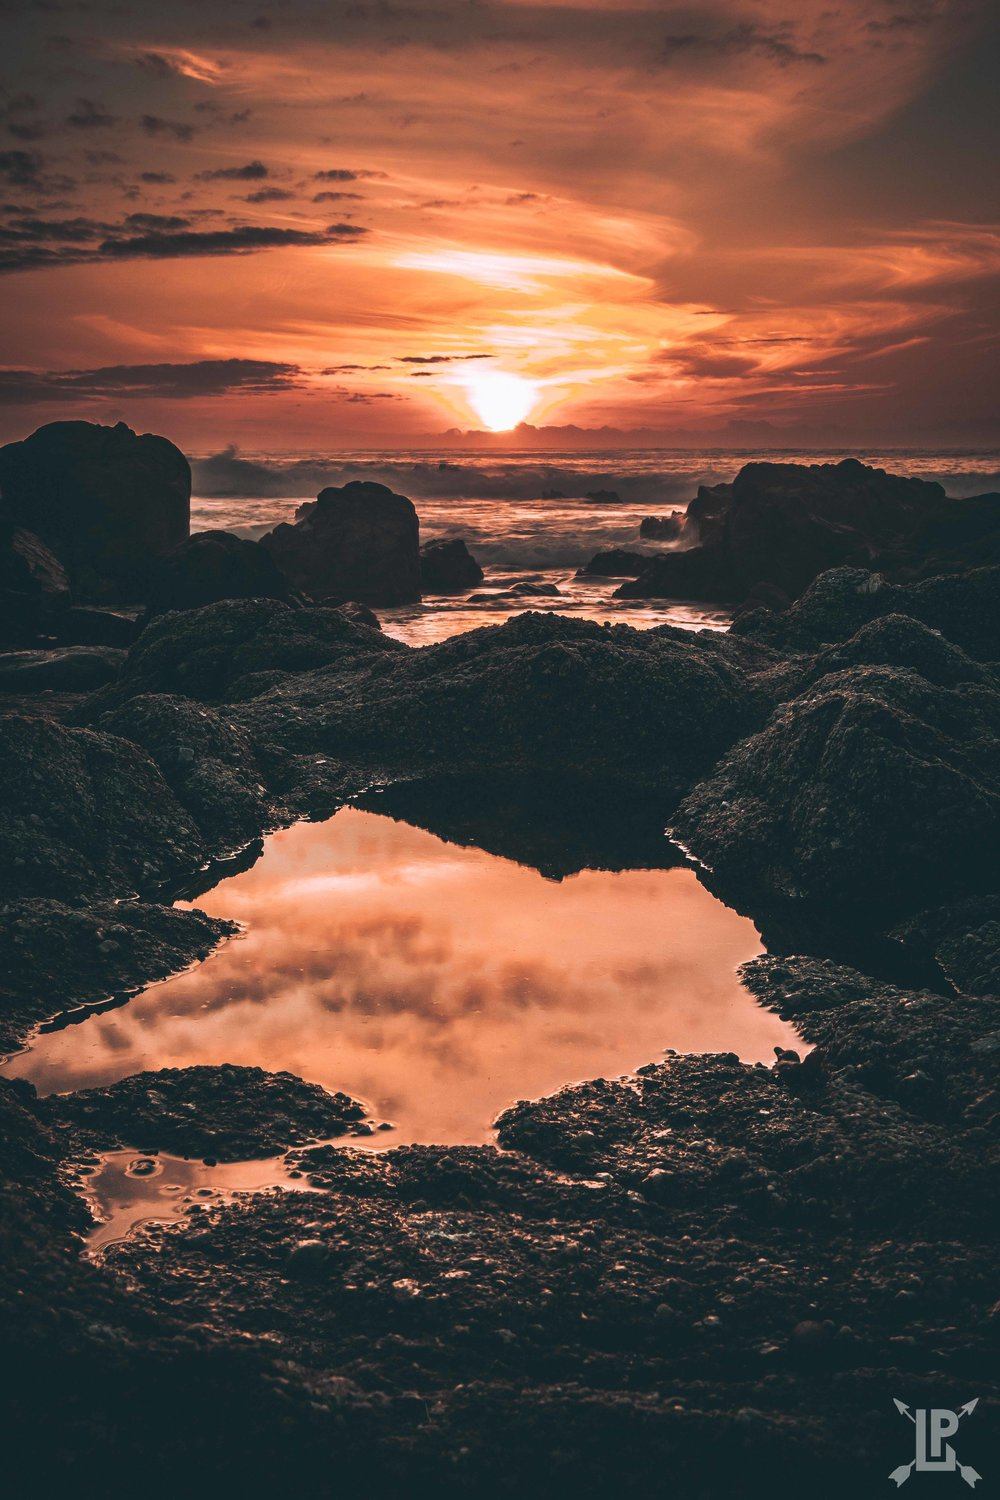 Canon 5D Mark IV, 24-105mm   f/22, 1/5 sec, ISO 400  One of the tidal pools between Asilomar Beach and Lover's Point at sunset